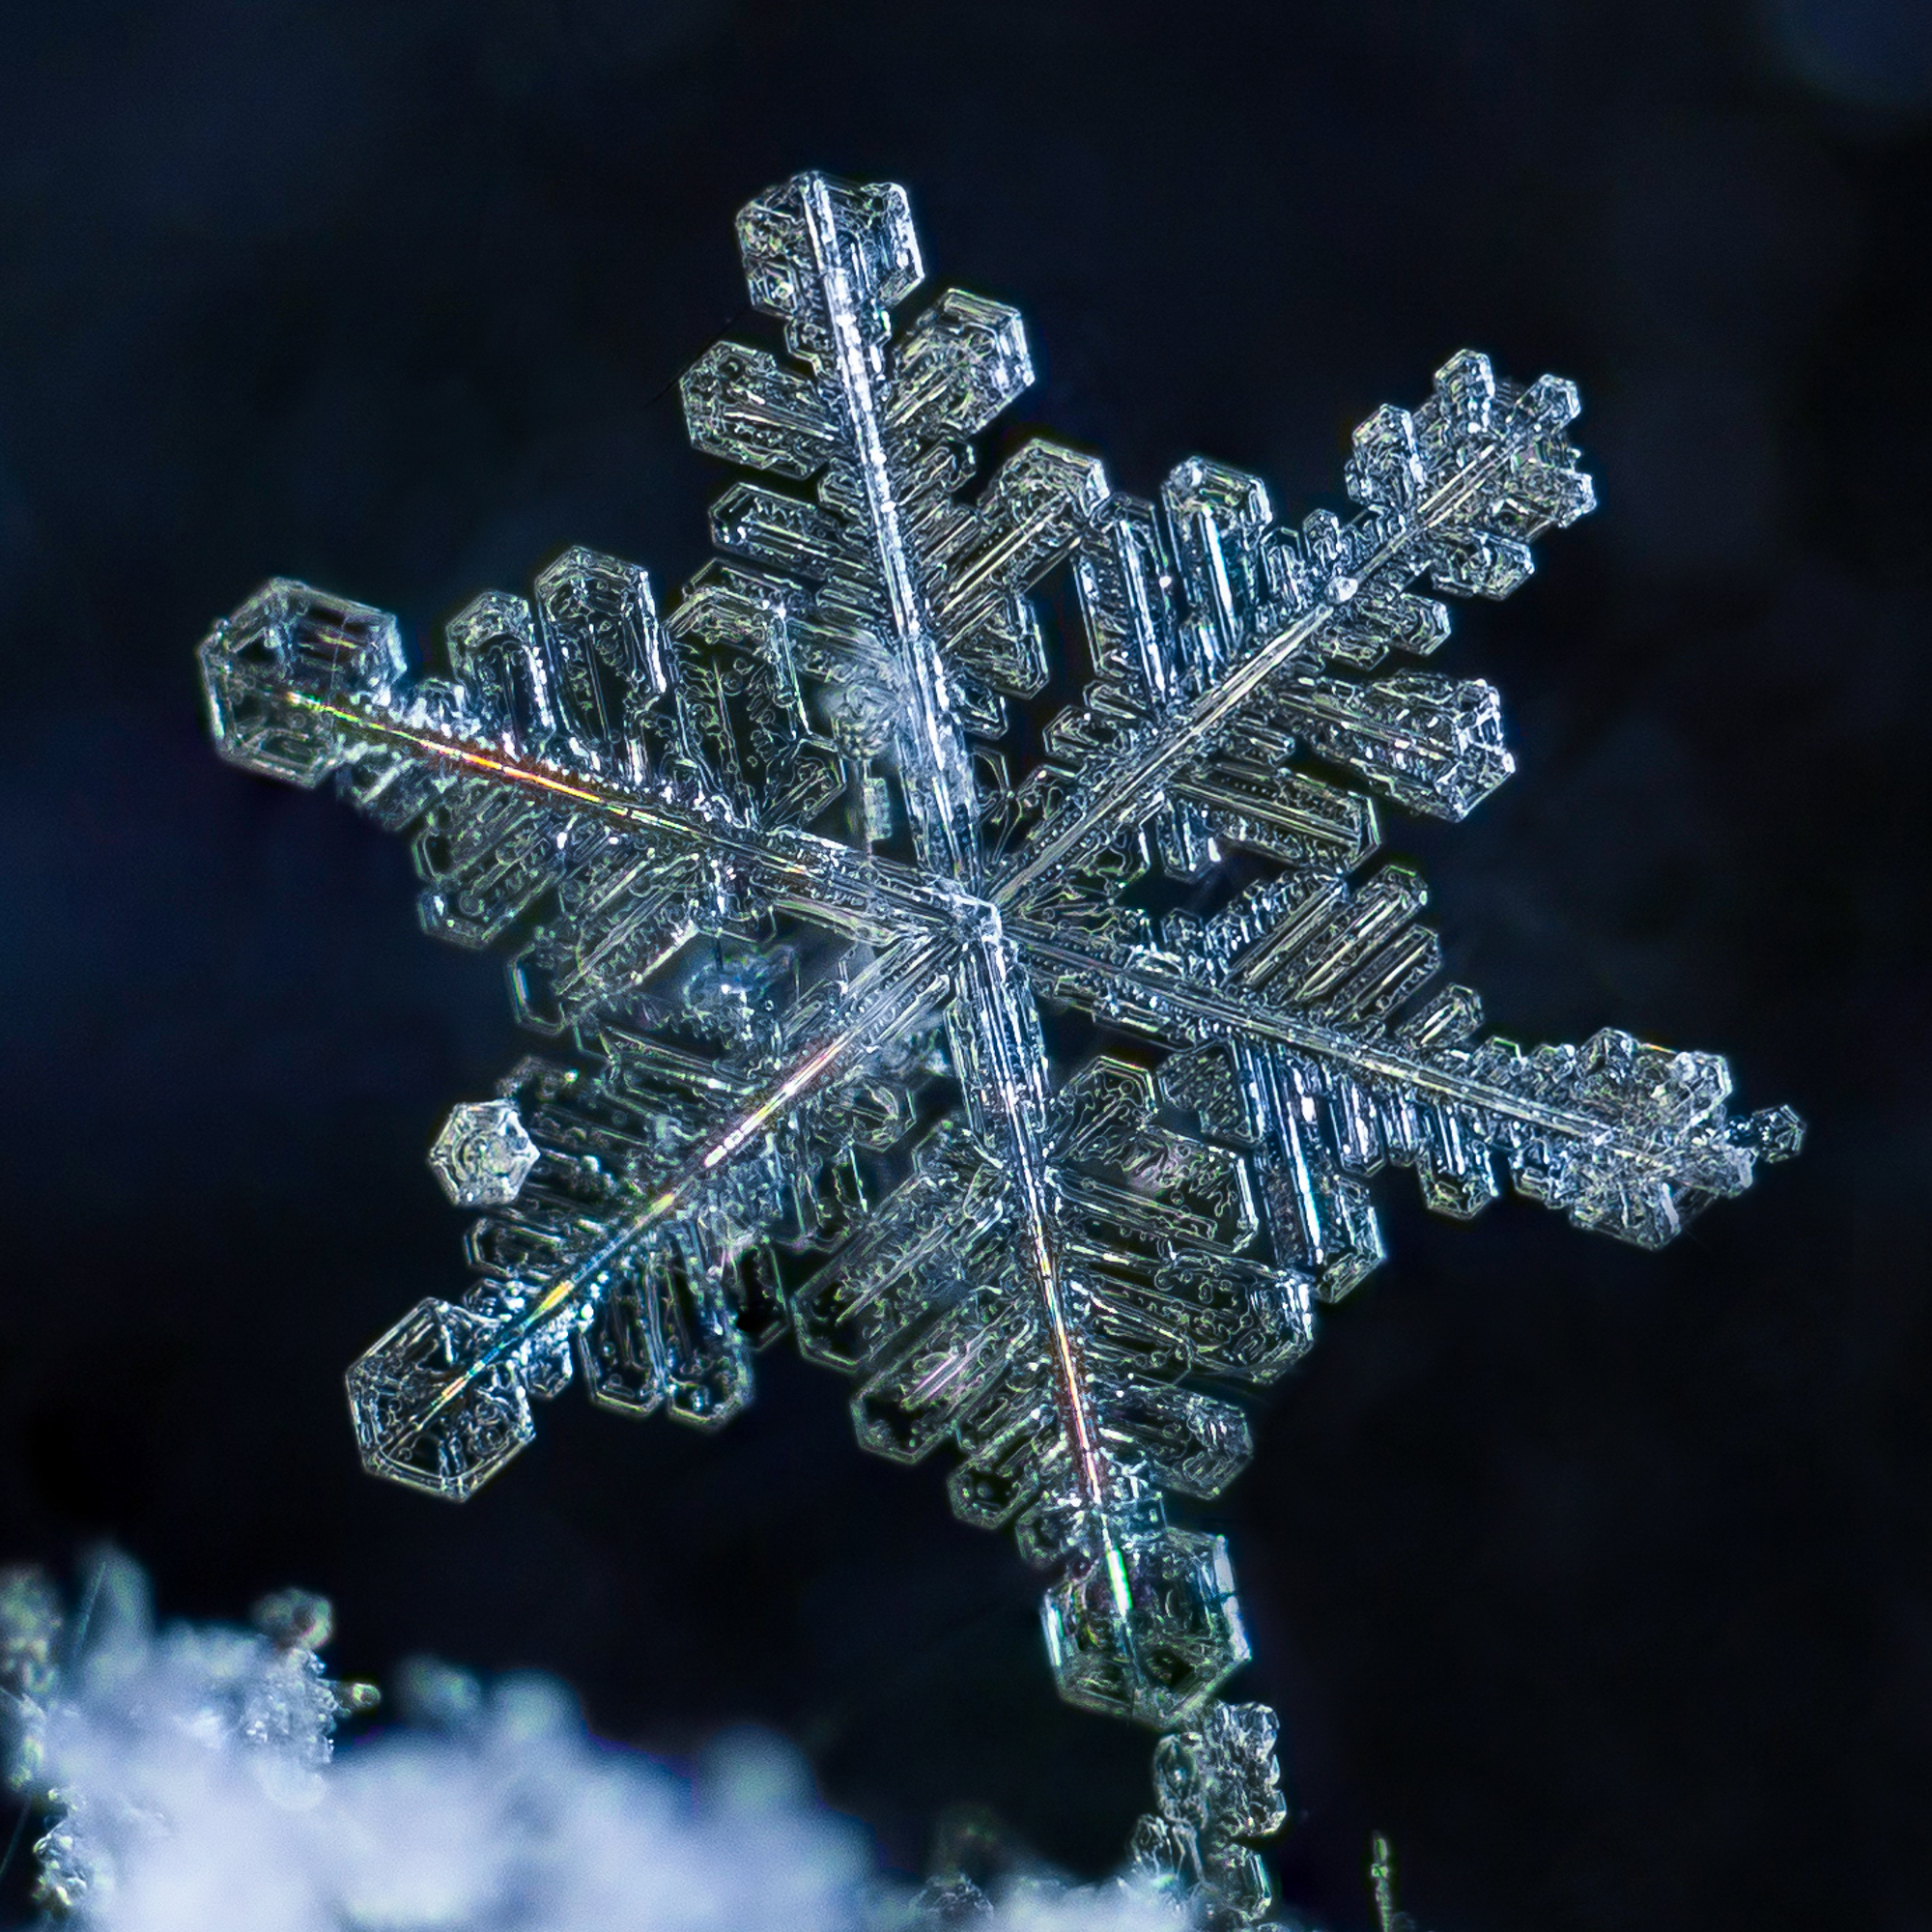 snowflake photography sample 1-7.jpg